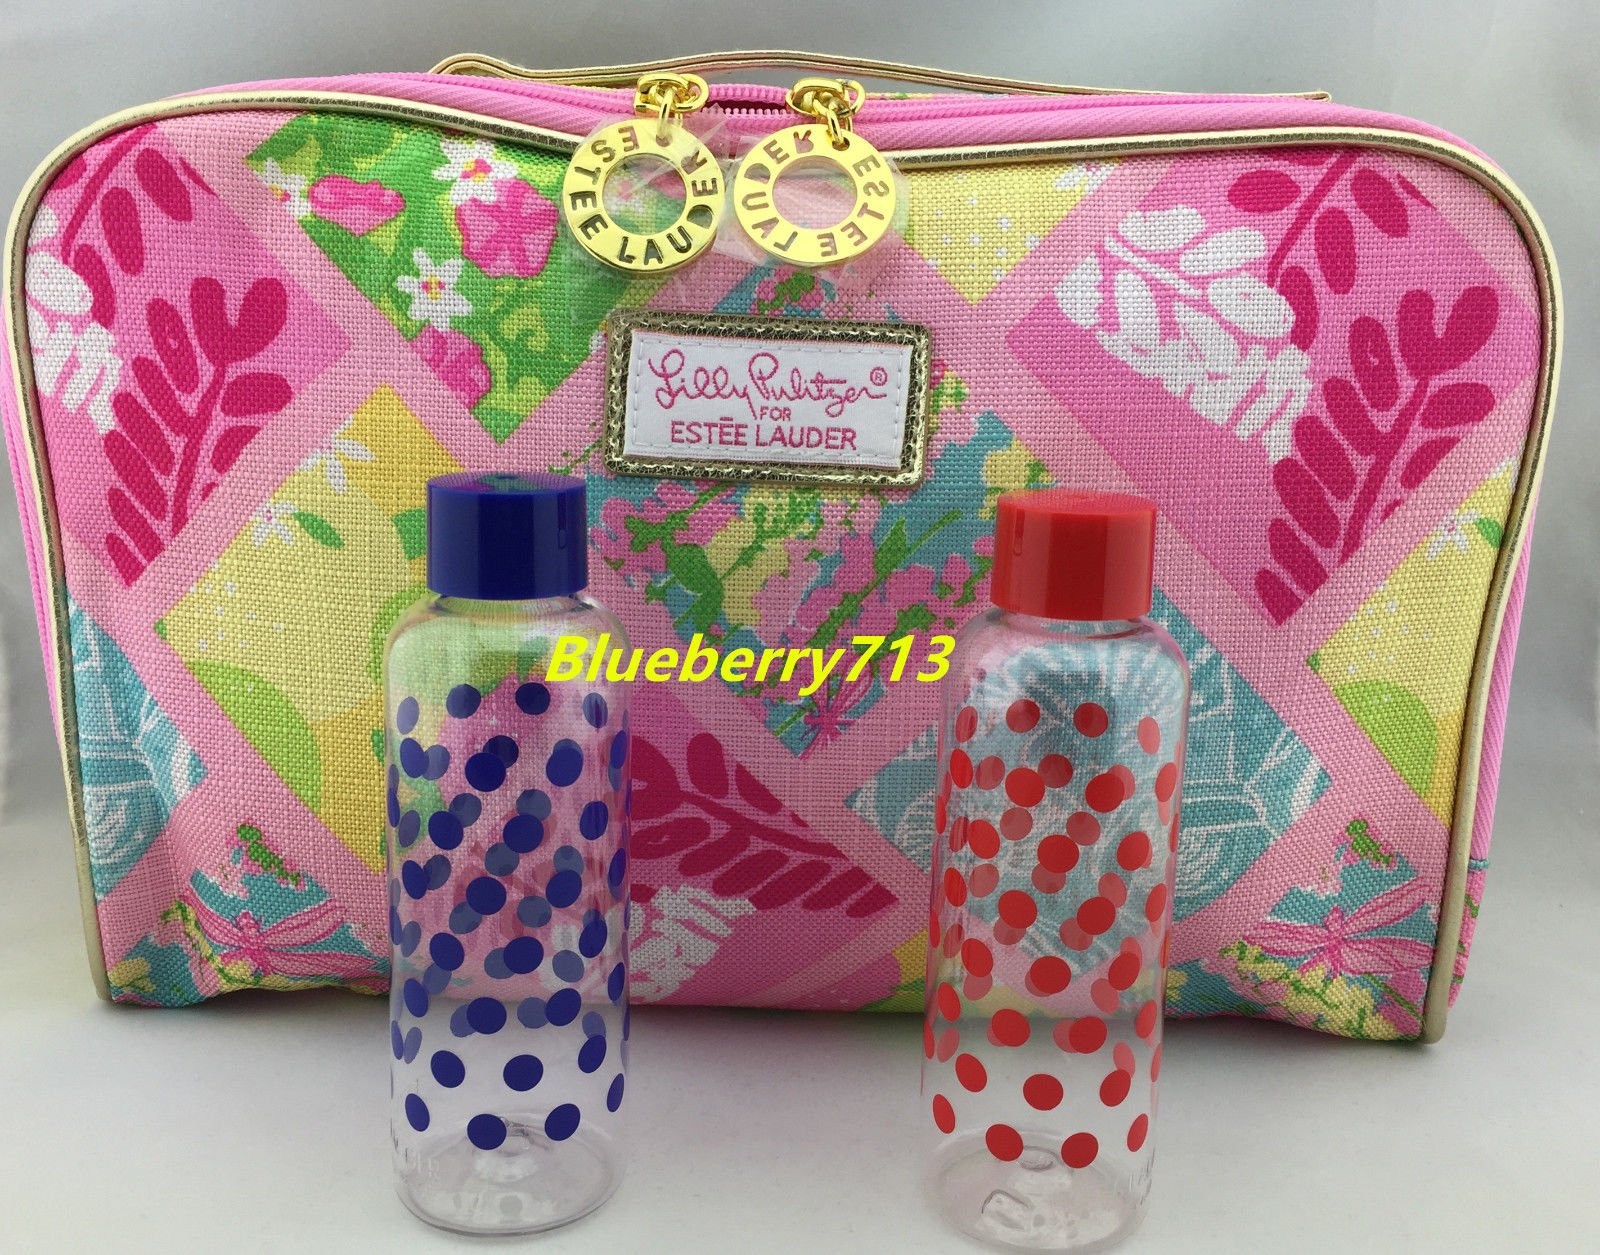 New! Estee Lauder Lilly Pulitzer  Makeup Bag with Top Handle + 2 Trave...